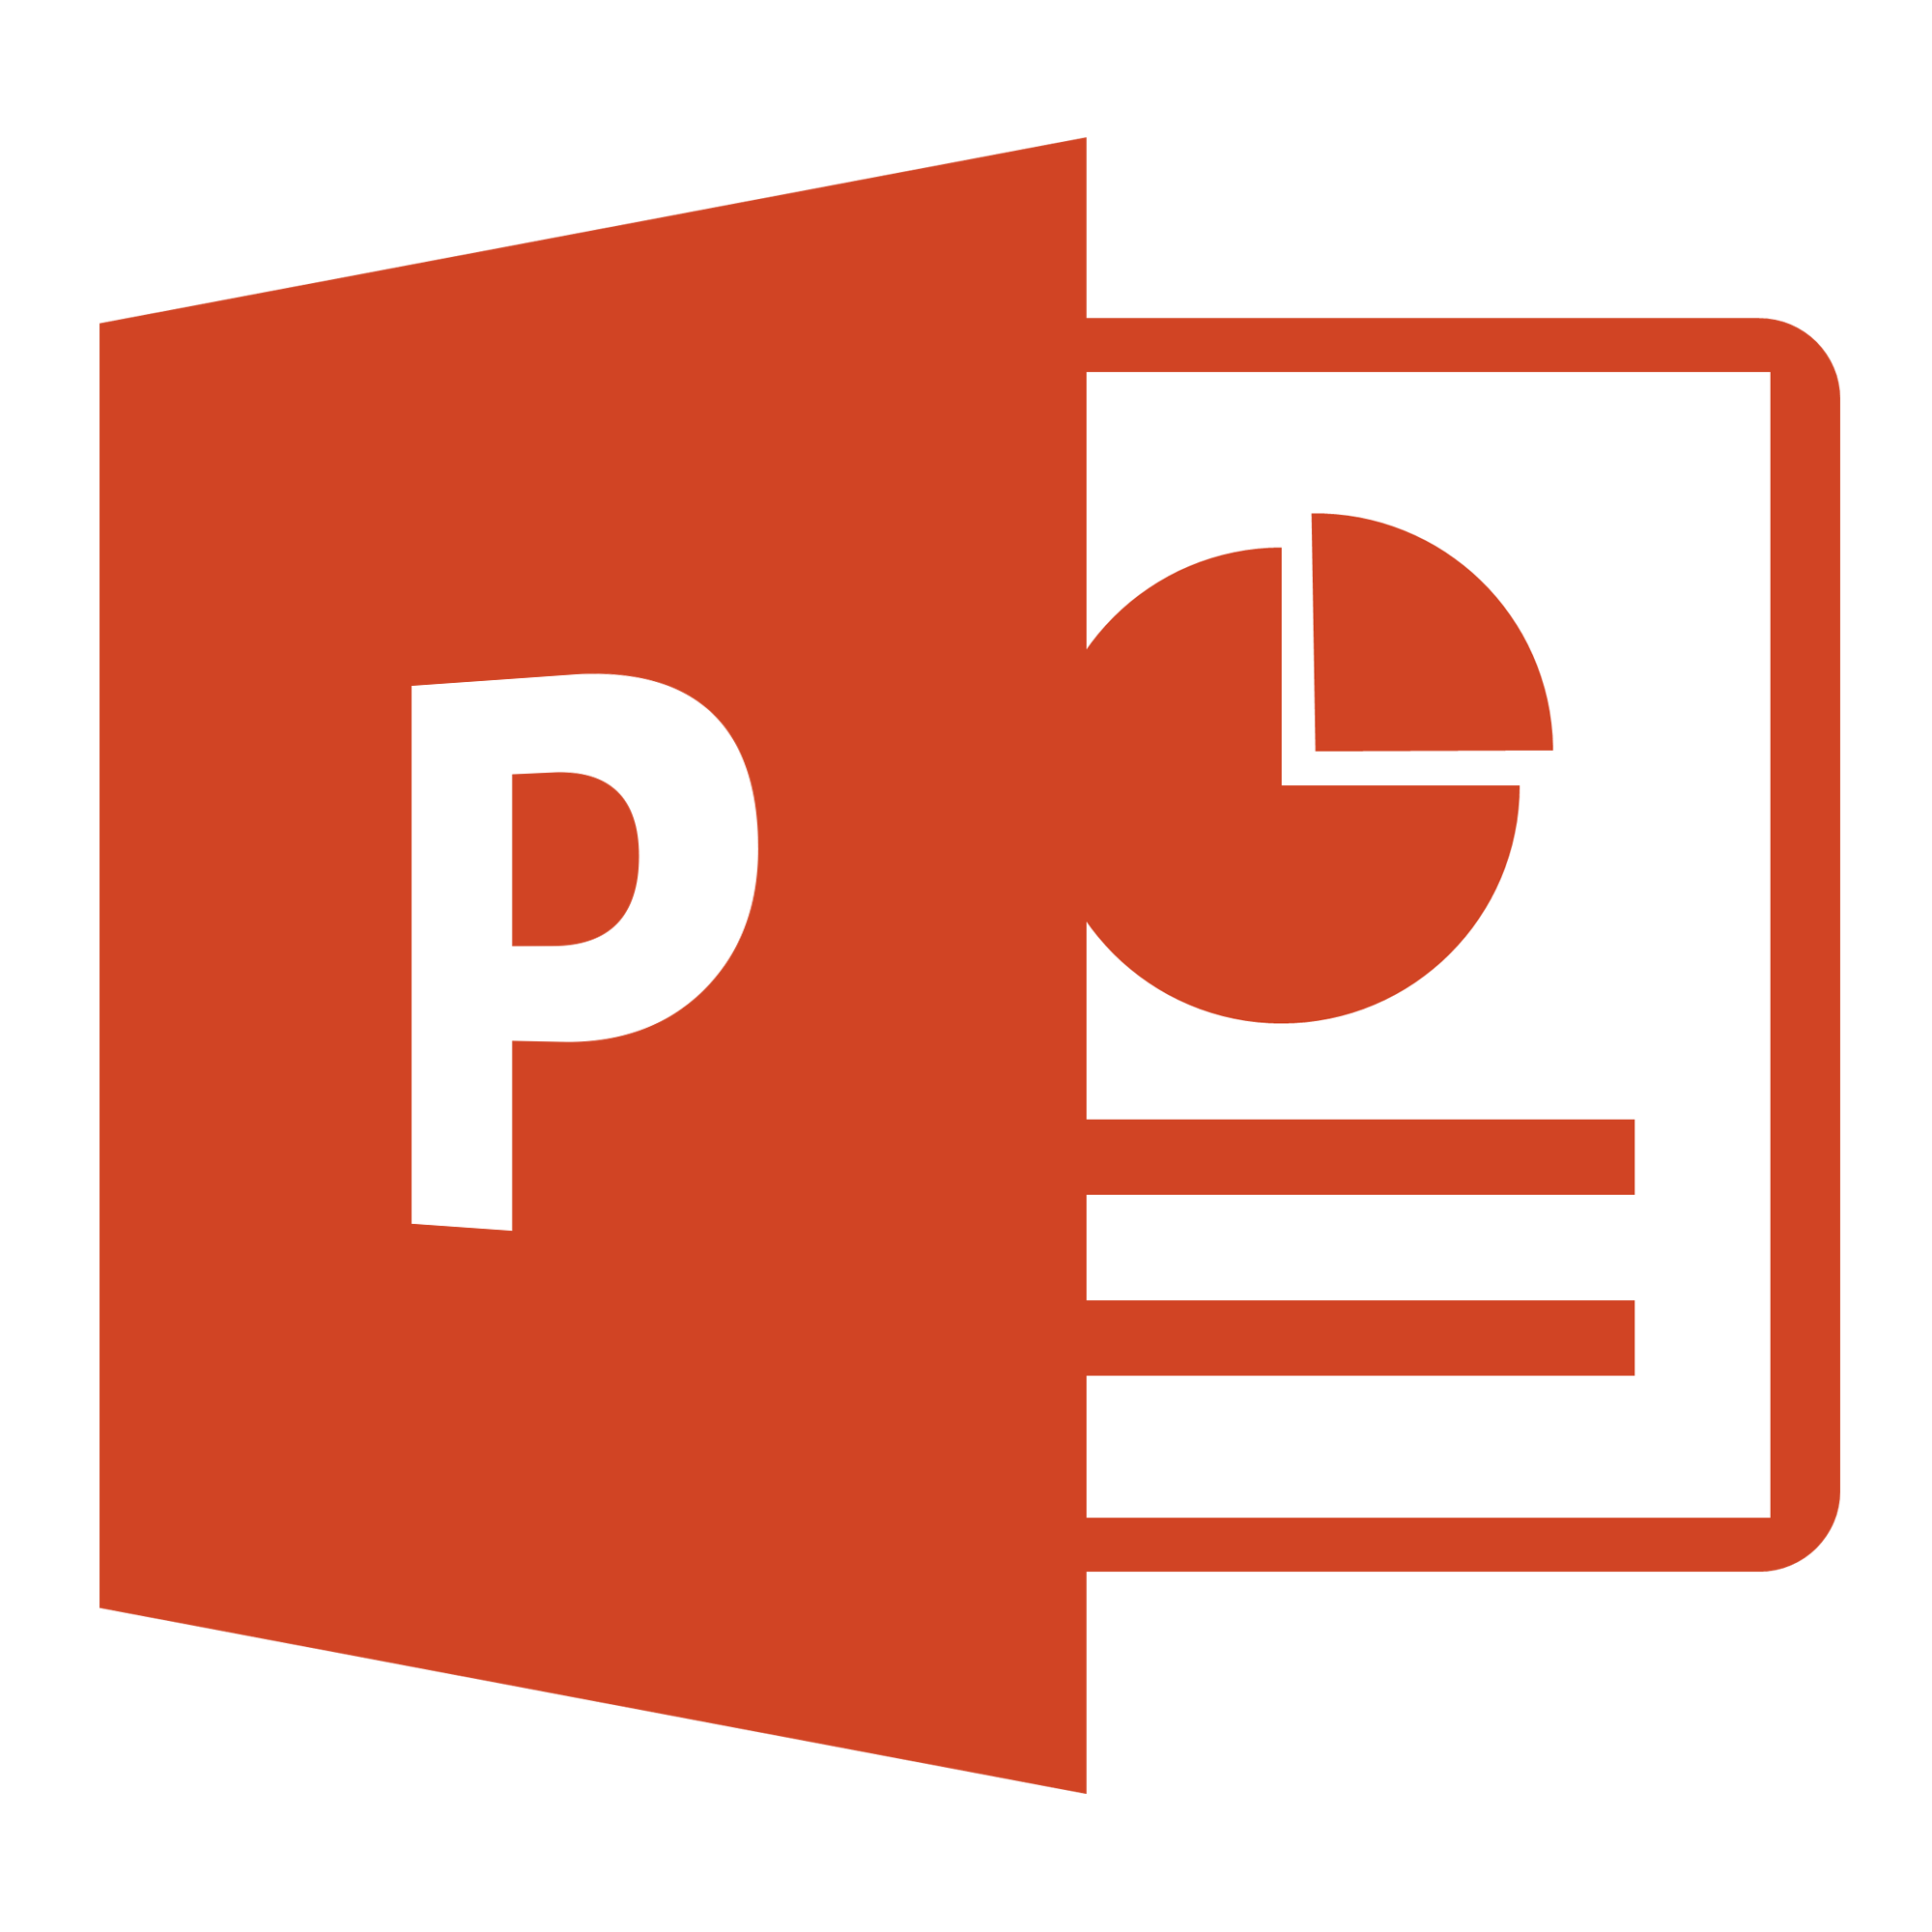 Free PNG HD For Powerpoint - 125902